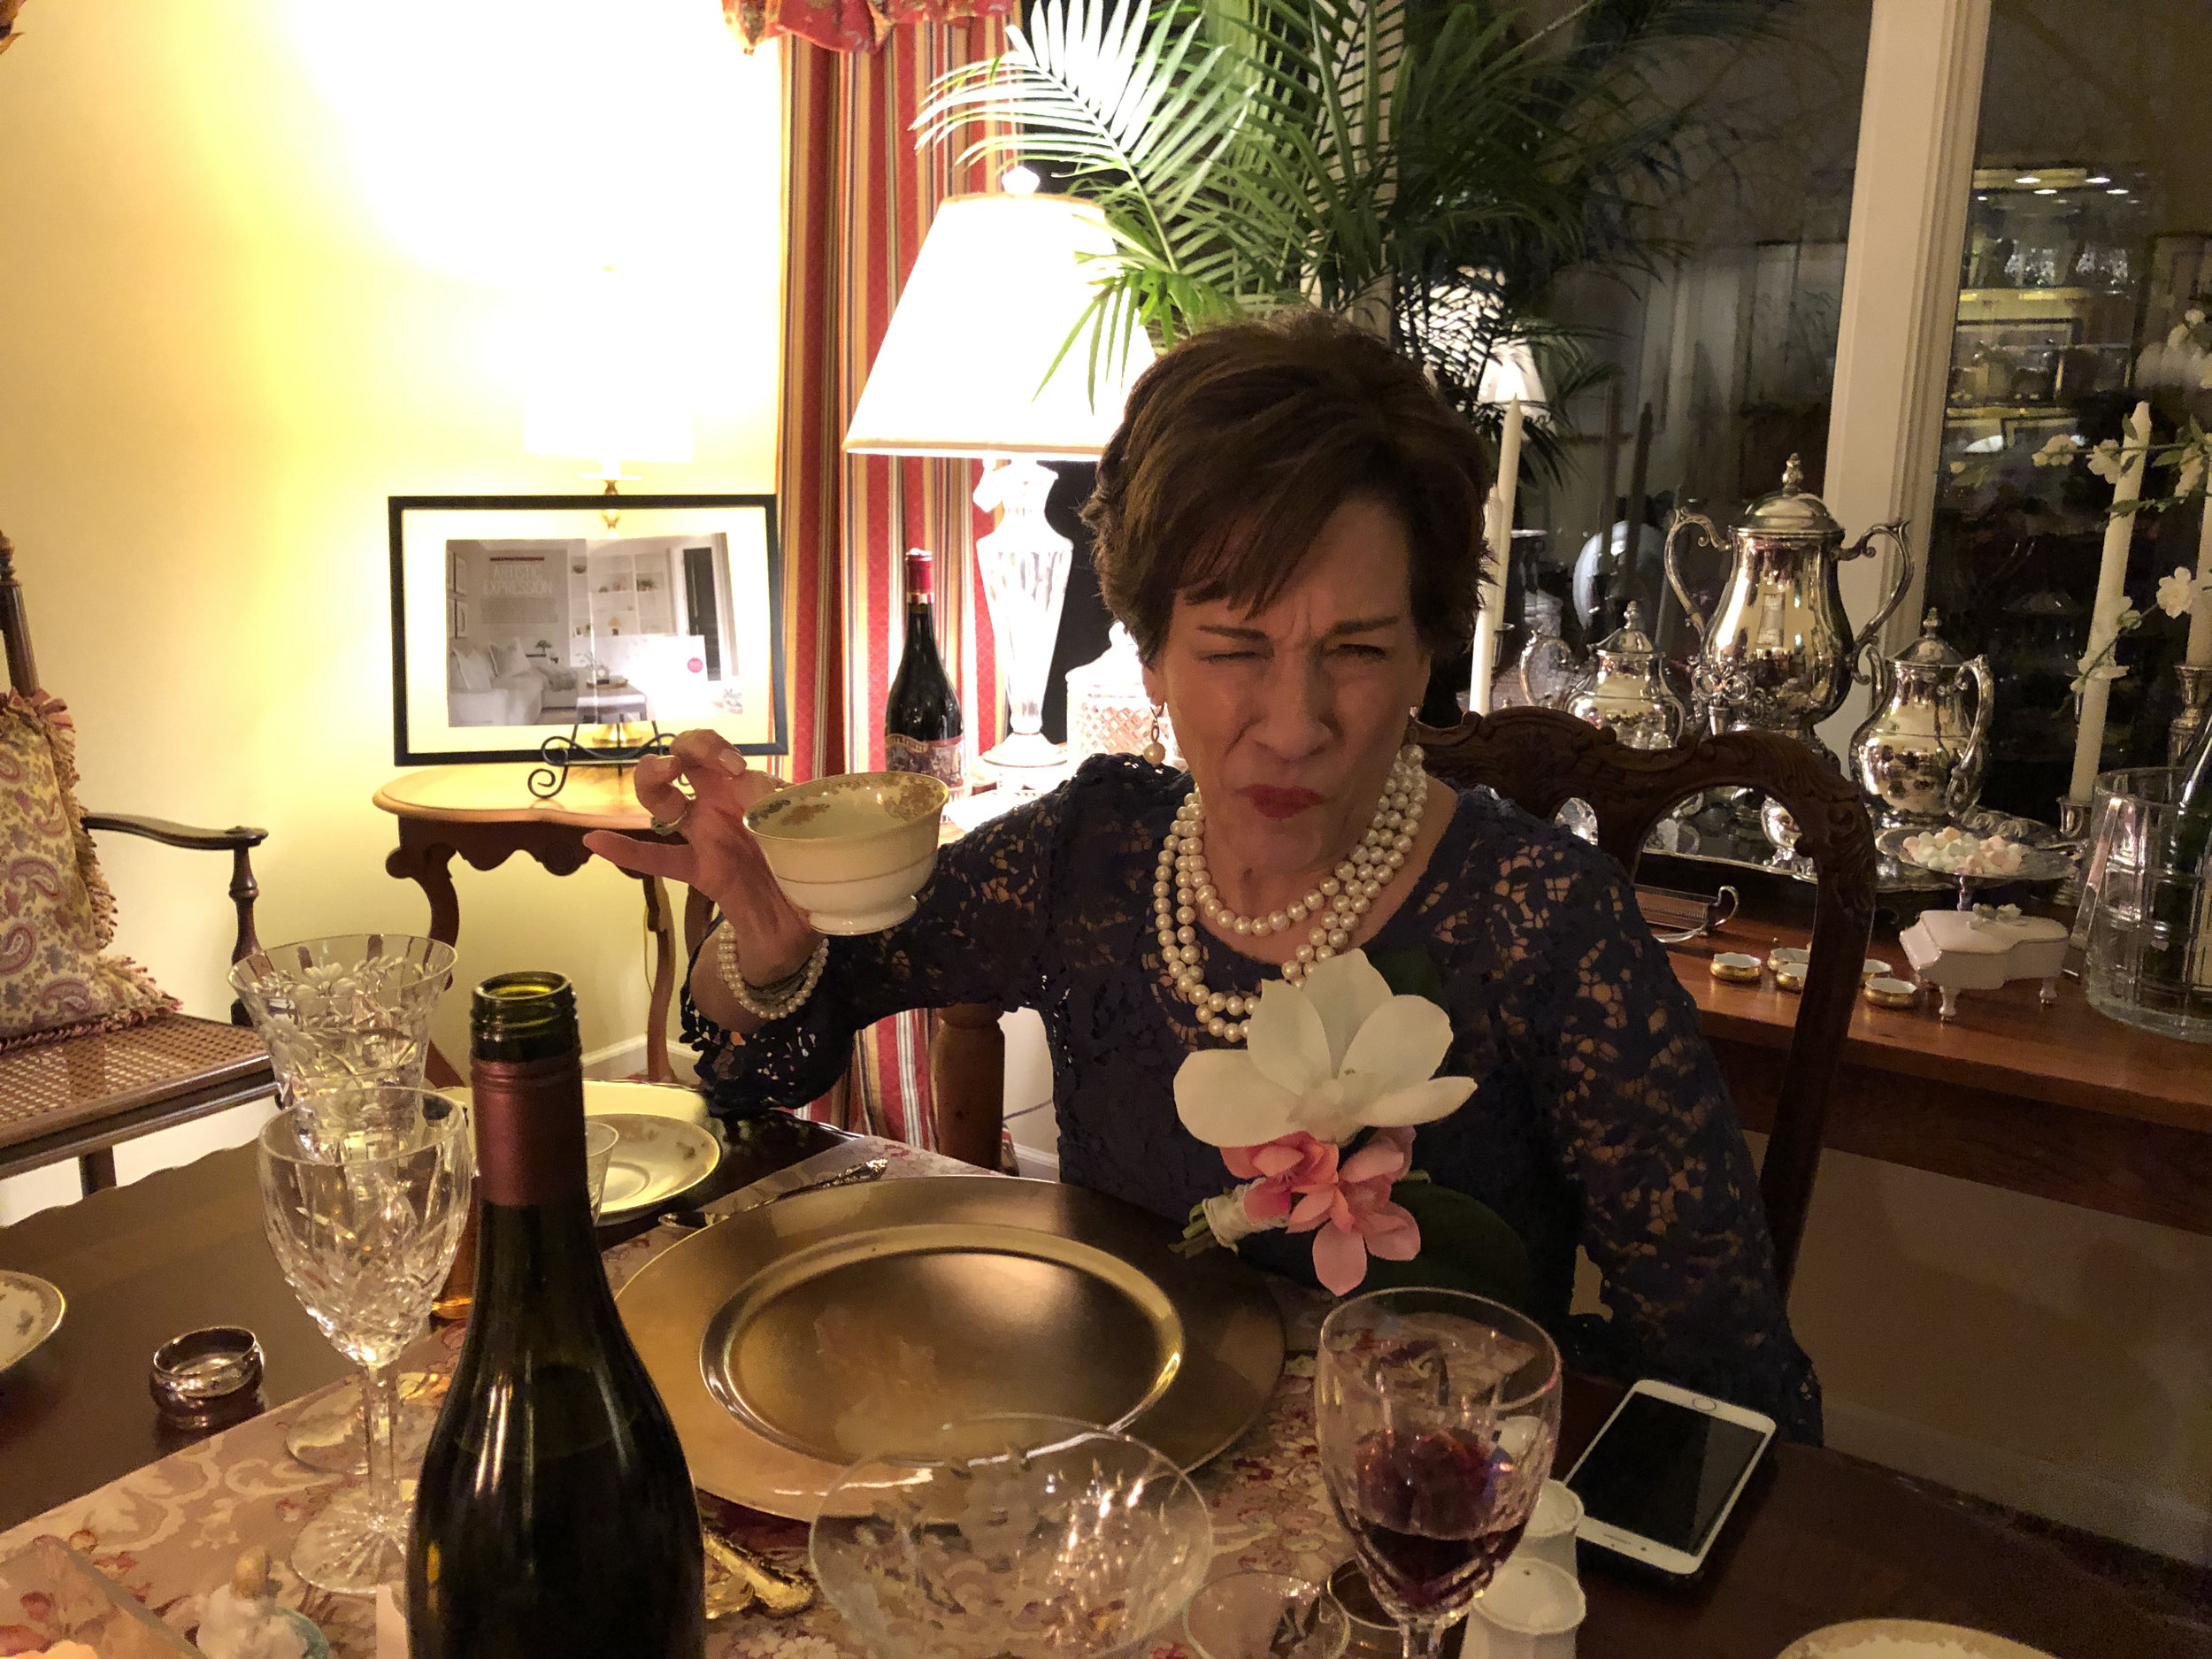 teri_whiskeyinateacup_W3BookClub_spiritedtable_photo38.jpg